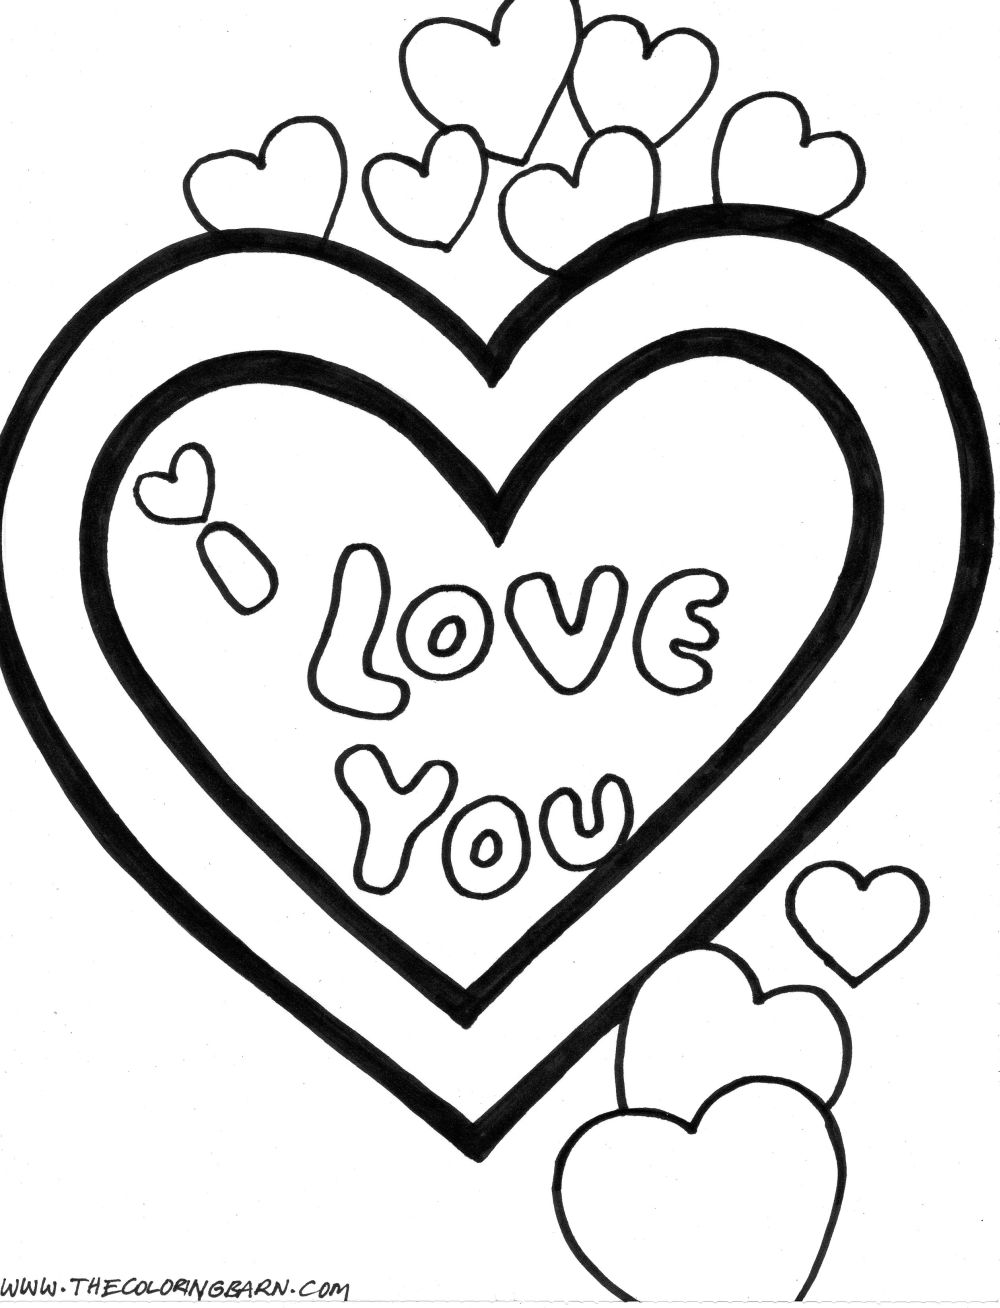 Coloring Pages Printable Love Coloring Pages love coloring pages printable eassume com heart for teenagers free pages